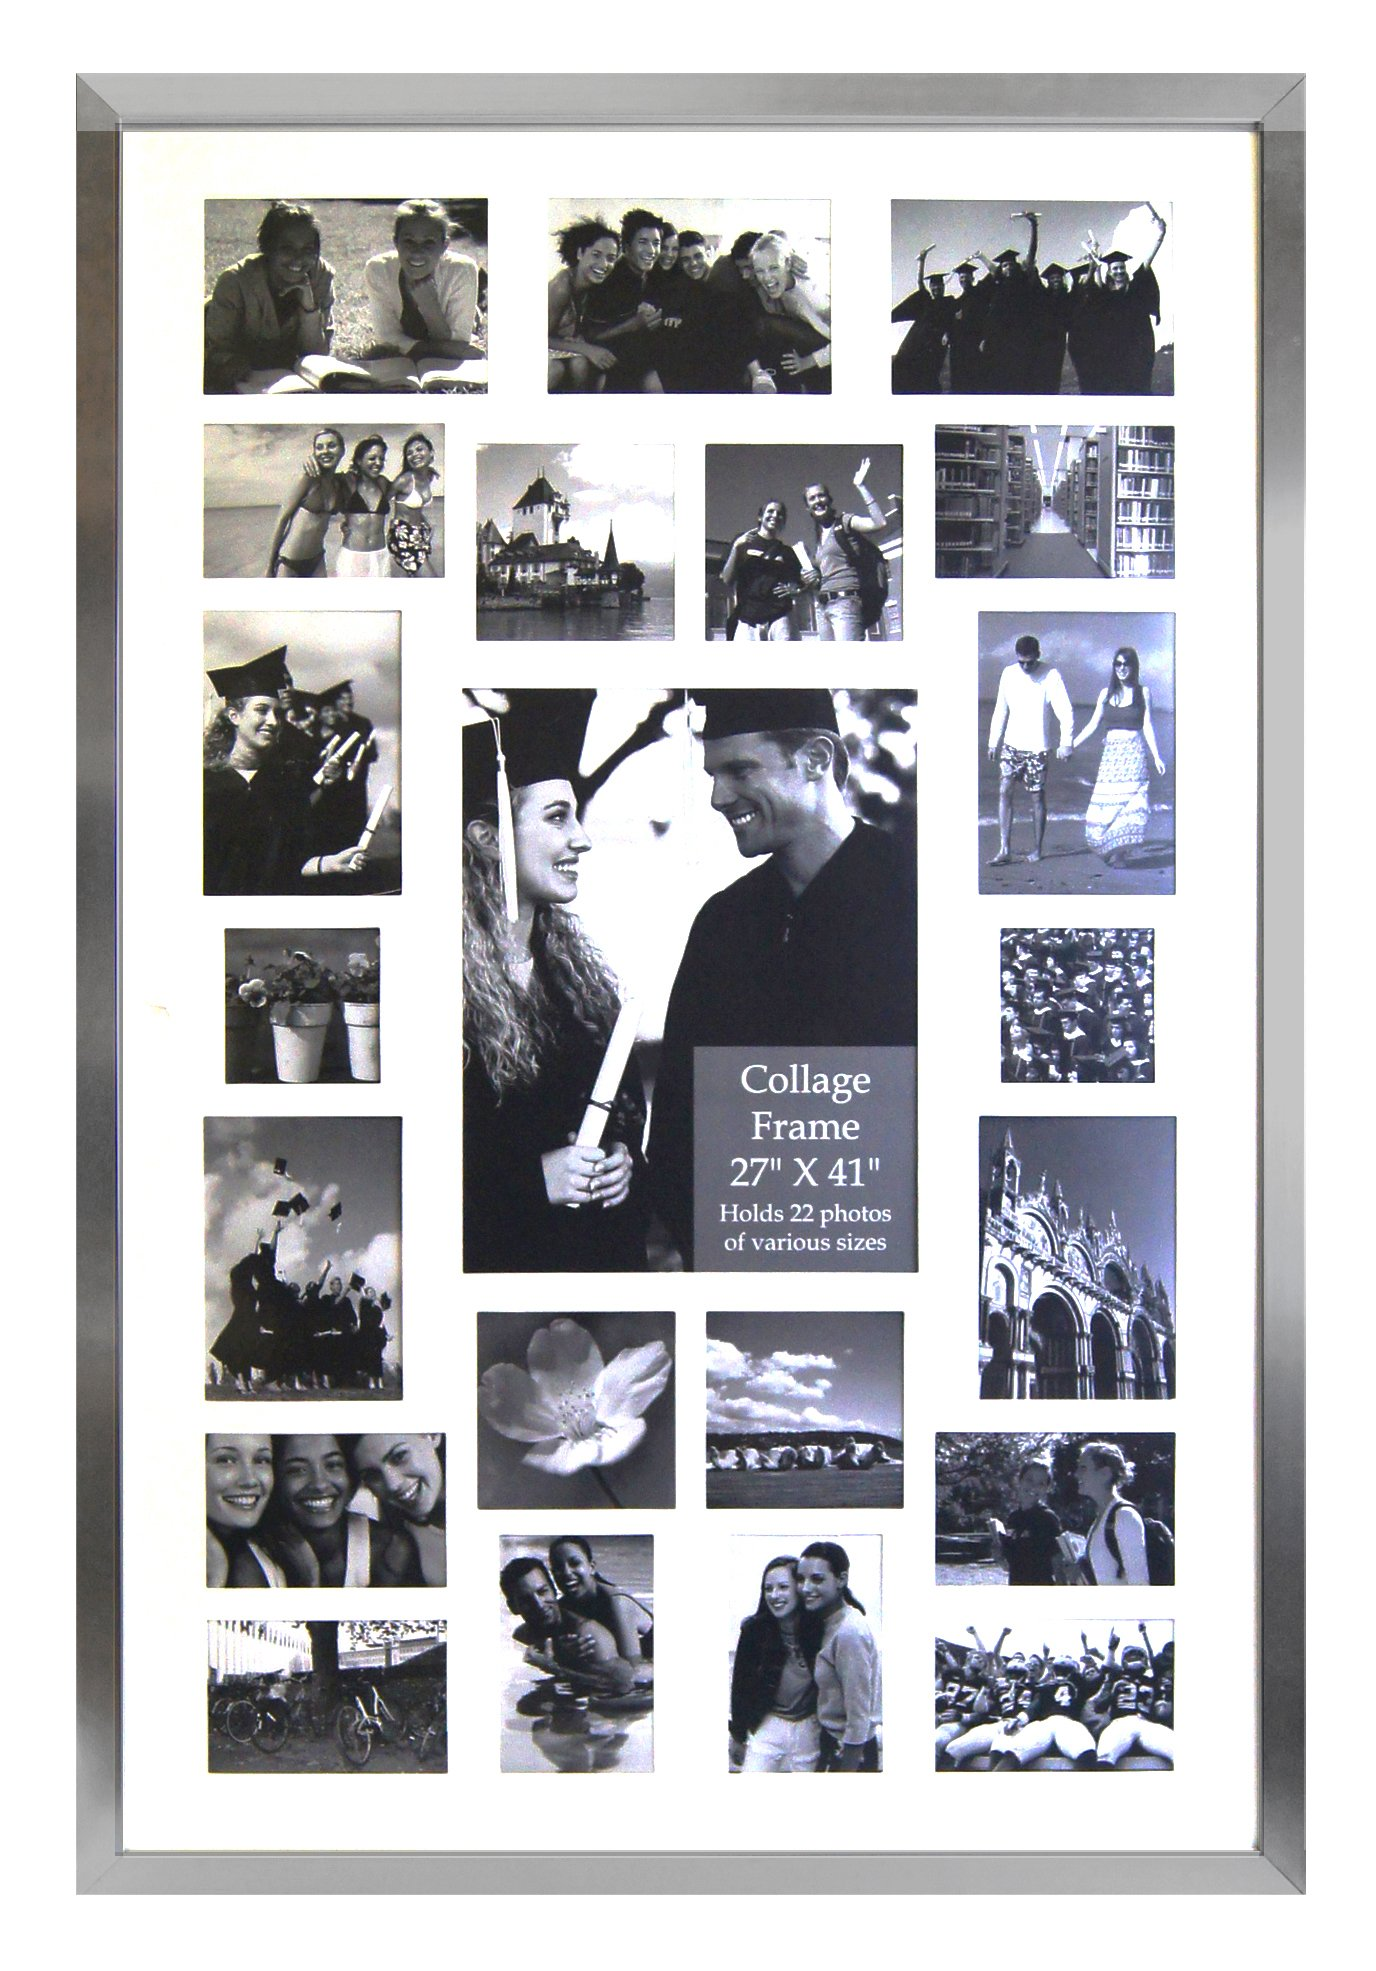 Studio 500 27 by 41-Inch Modern Picture Frame Collection, Contemporary Picture Frame (EPF305), Collage Frame Hangs, Holds 22 Images Openings, Comes in Various (Silver)